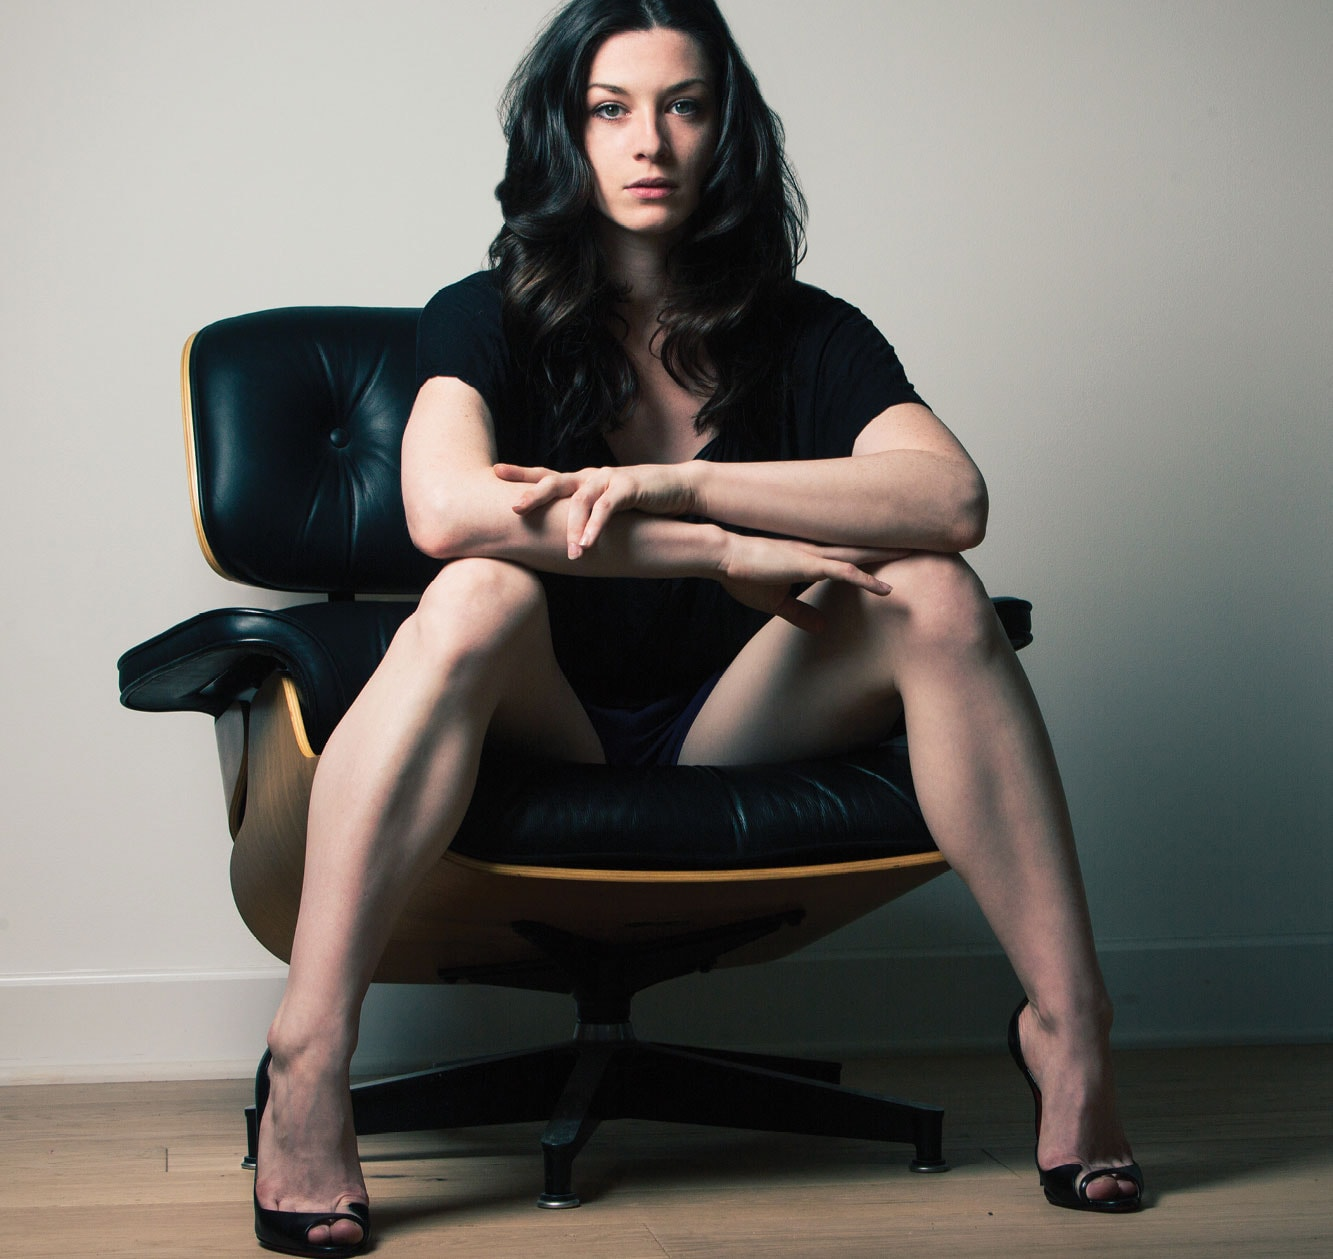 Discussion on this topic: Claire King (born 1963), stoya/